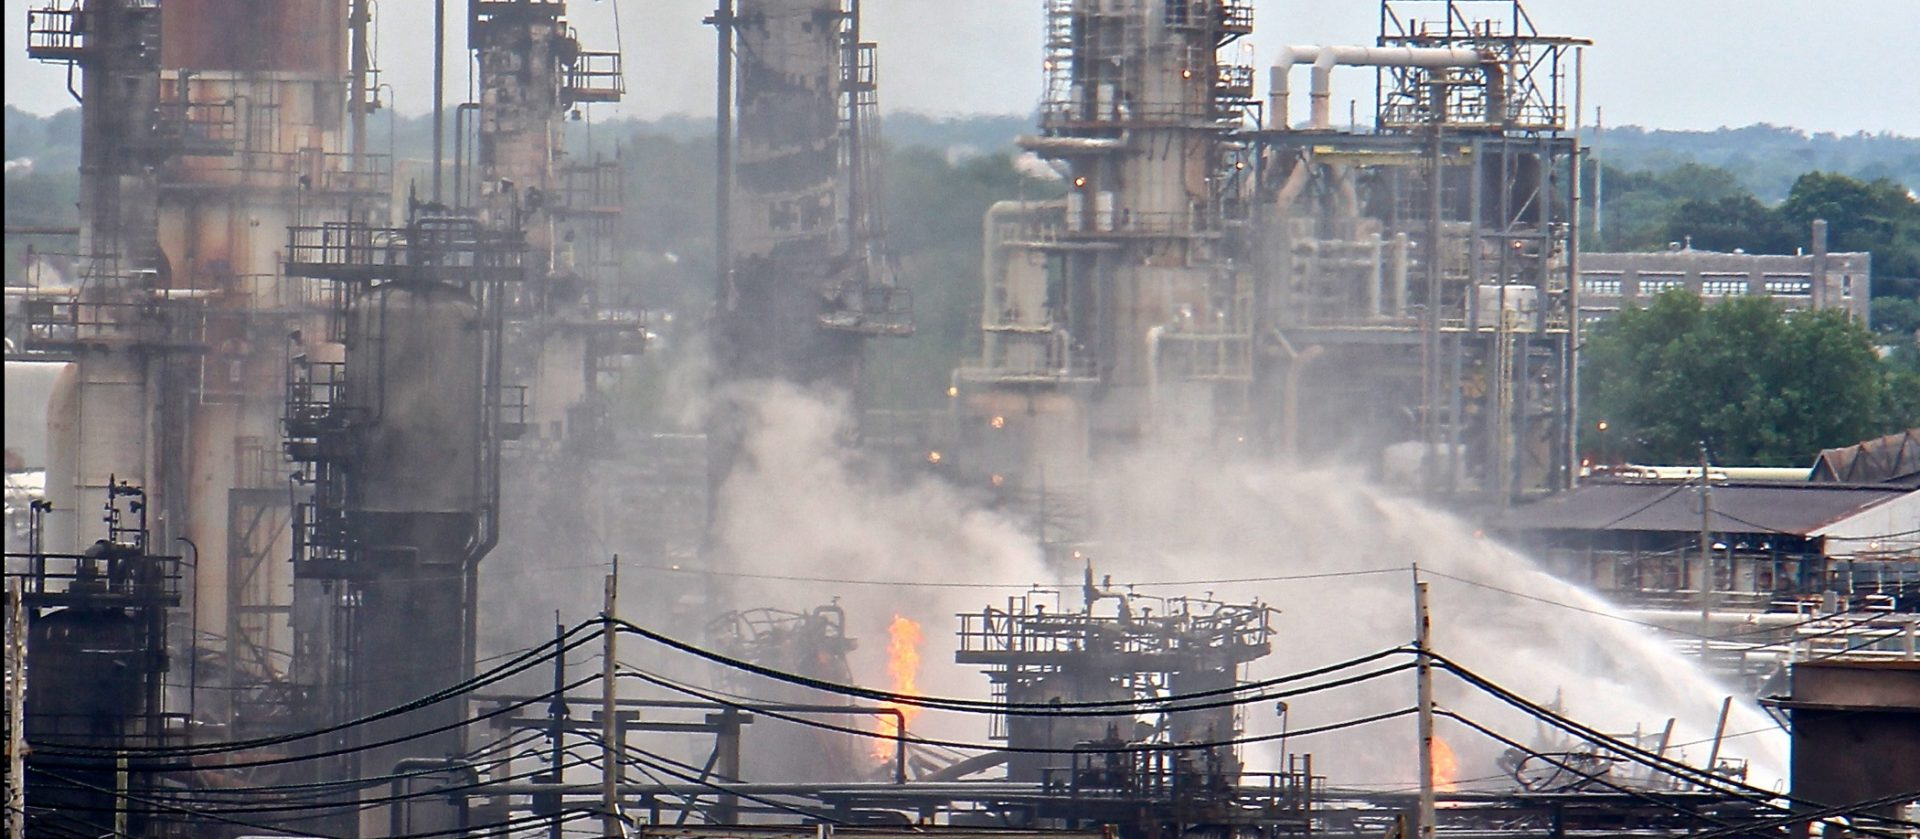 Possible future uses for PES refinery call into question cleanup plans there | StateImpact Pennsylvania